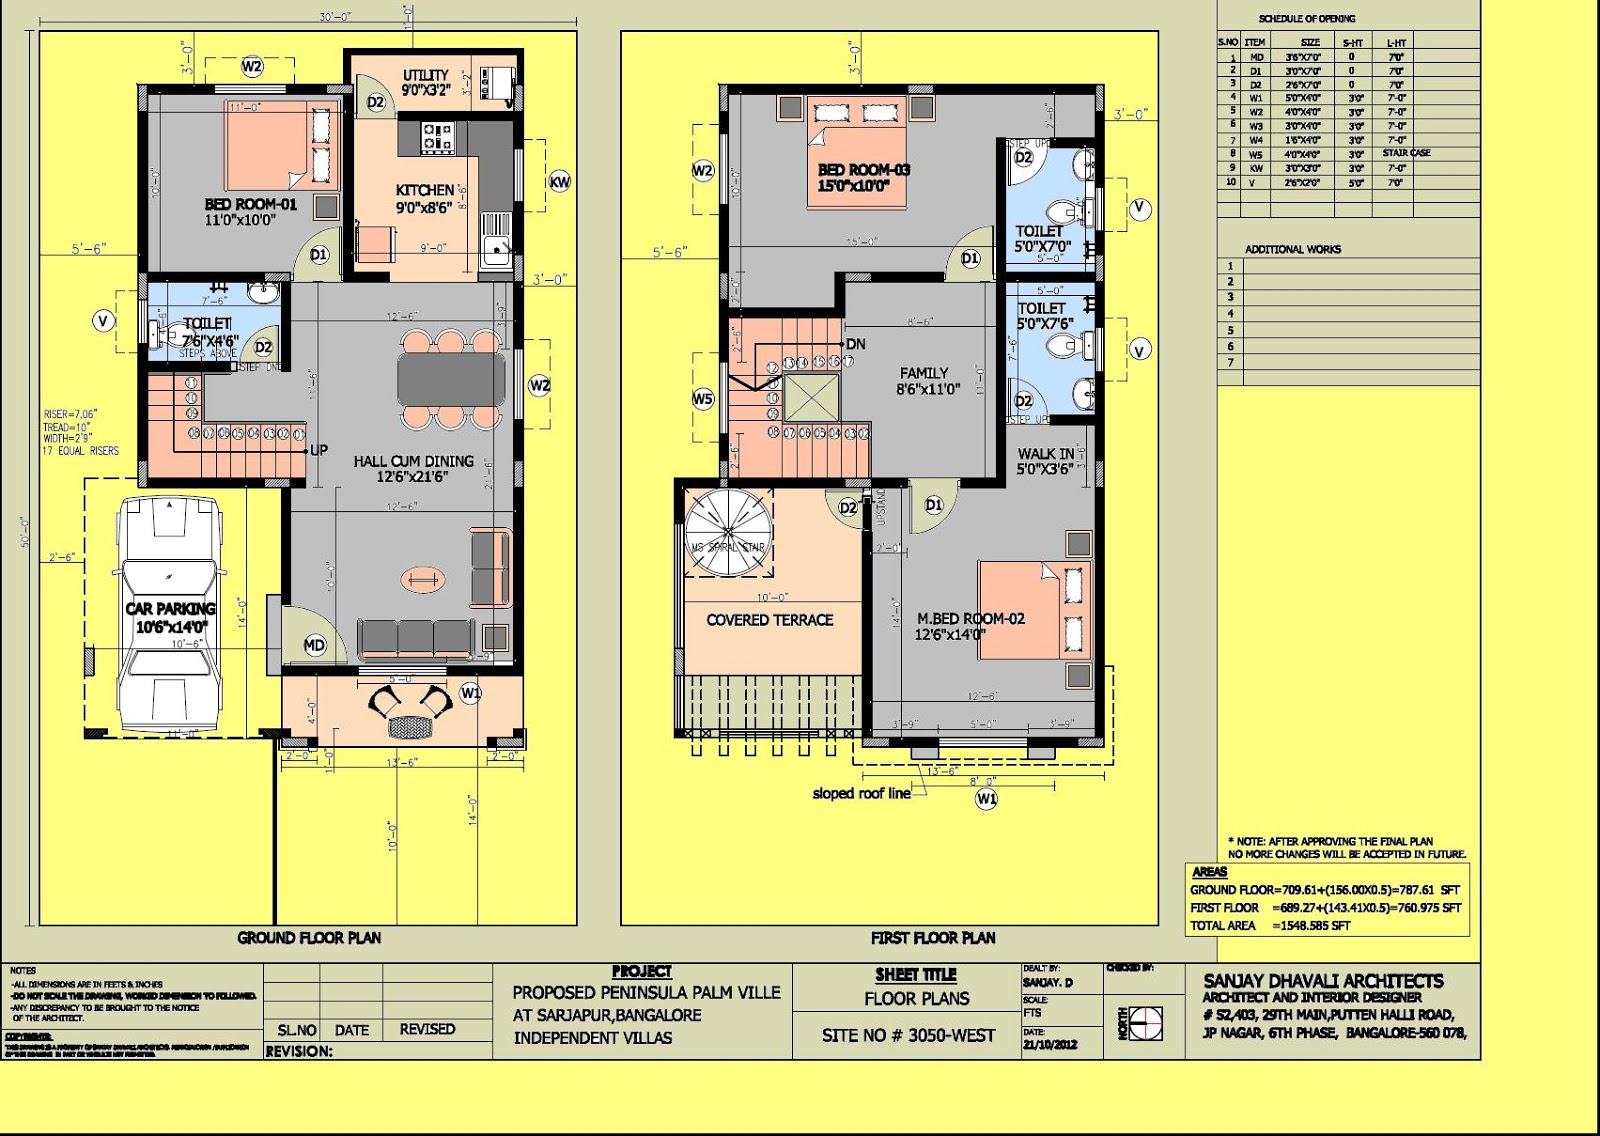 Peninsula infra villas apartment plot projects for 30x50 duplex house plans